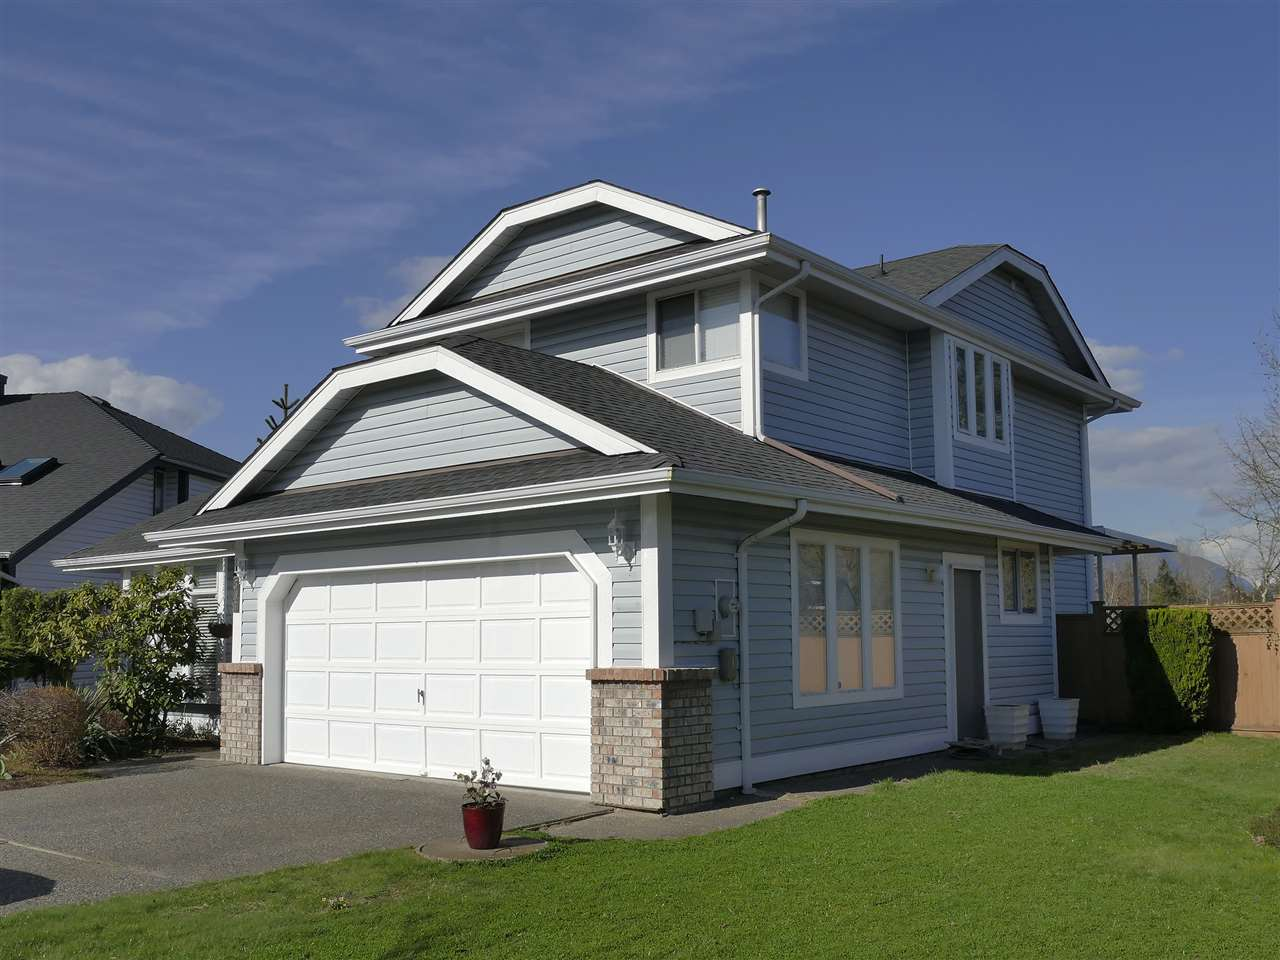 Photo 2: 2535 COLONIAL Drive in Port Coquitlam: Citadel PQ House for sale : MLS® # R2174757